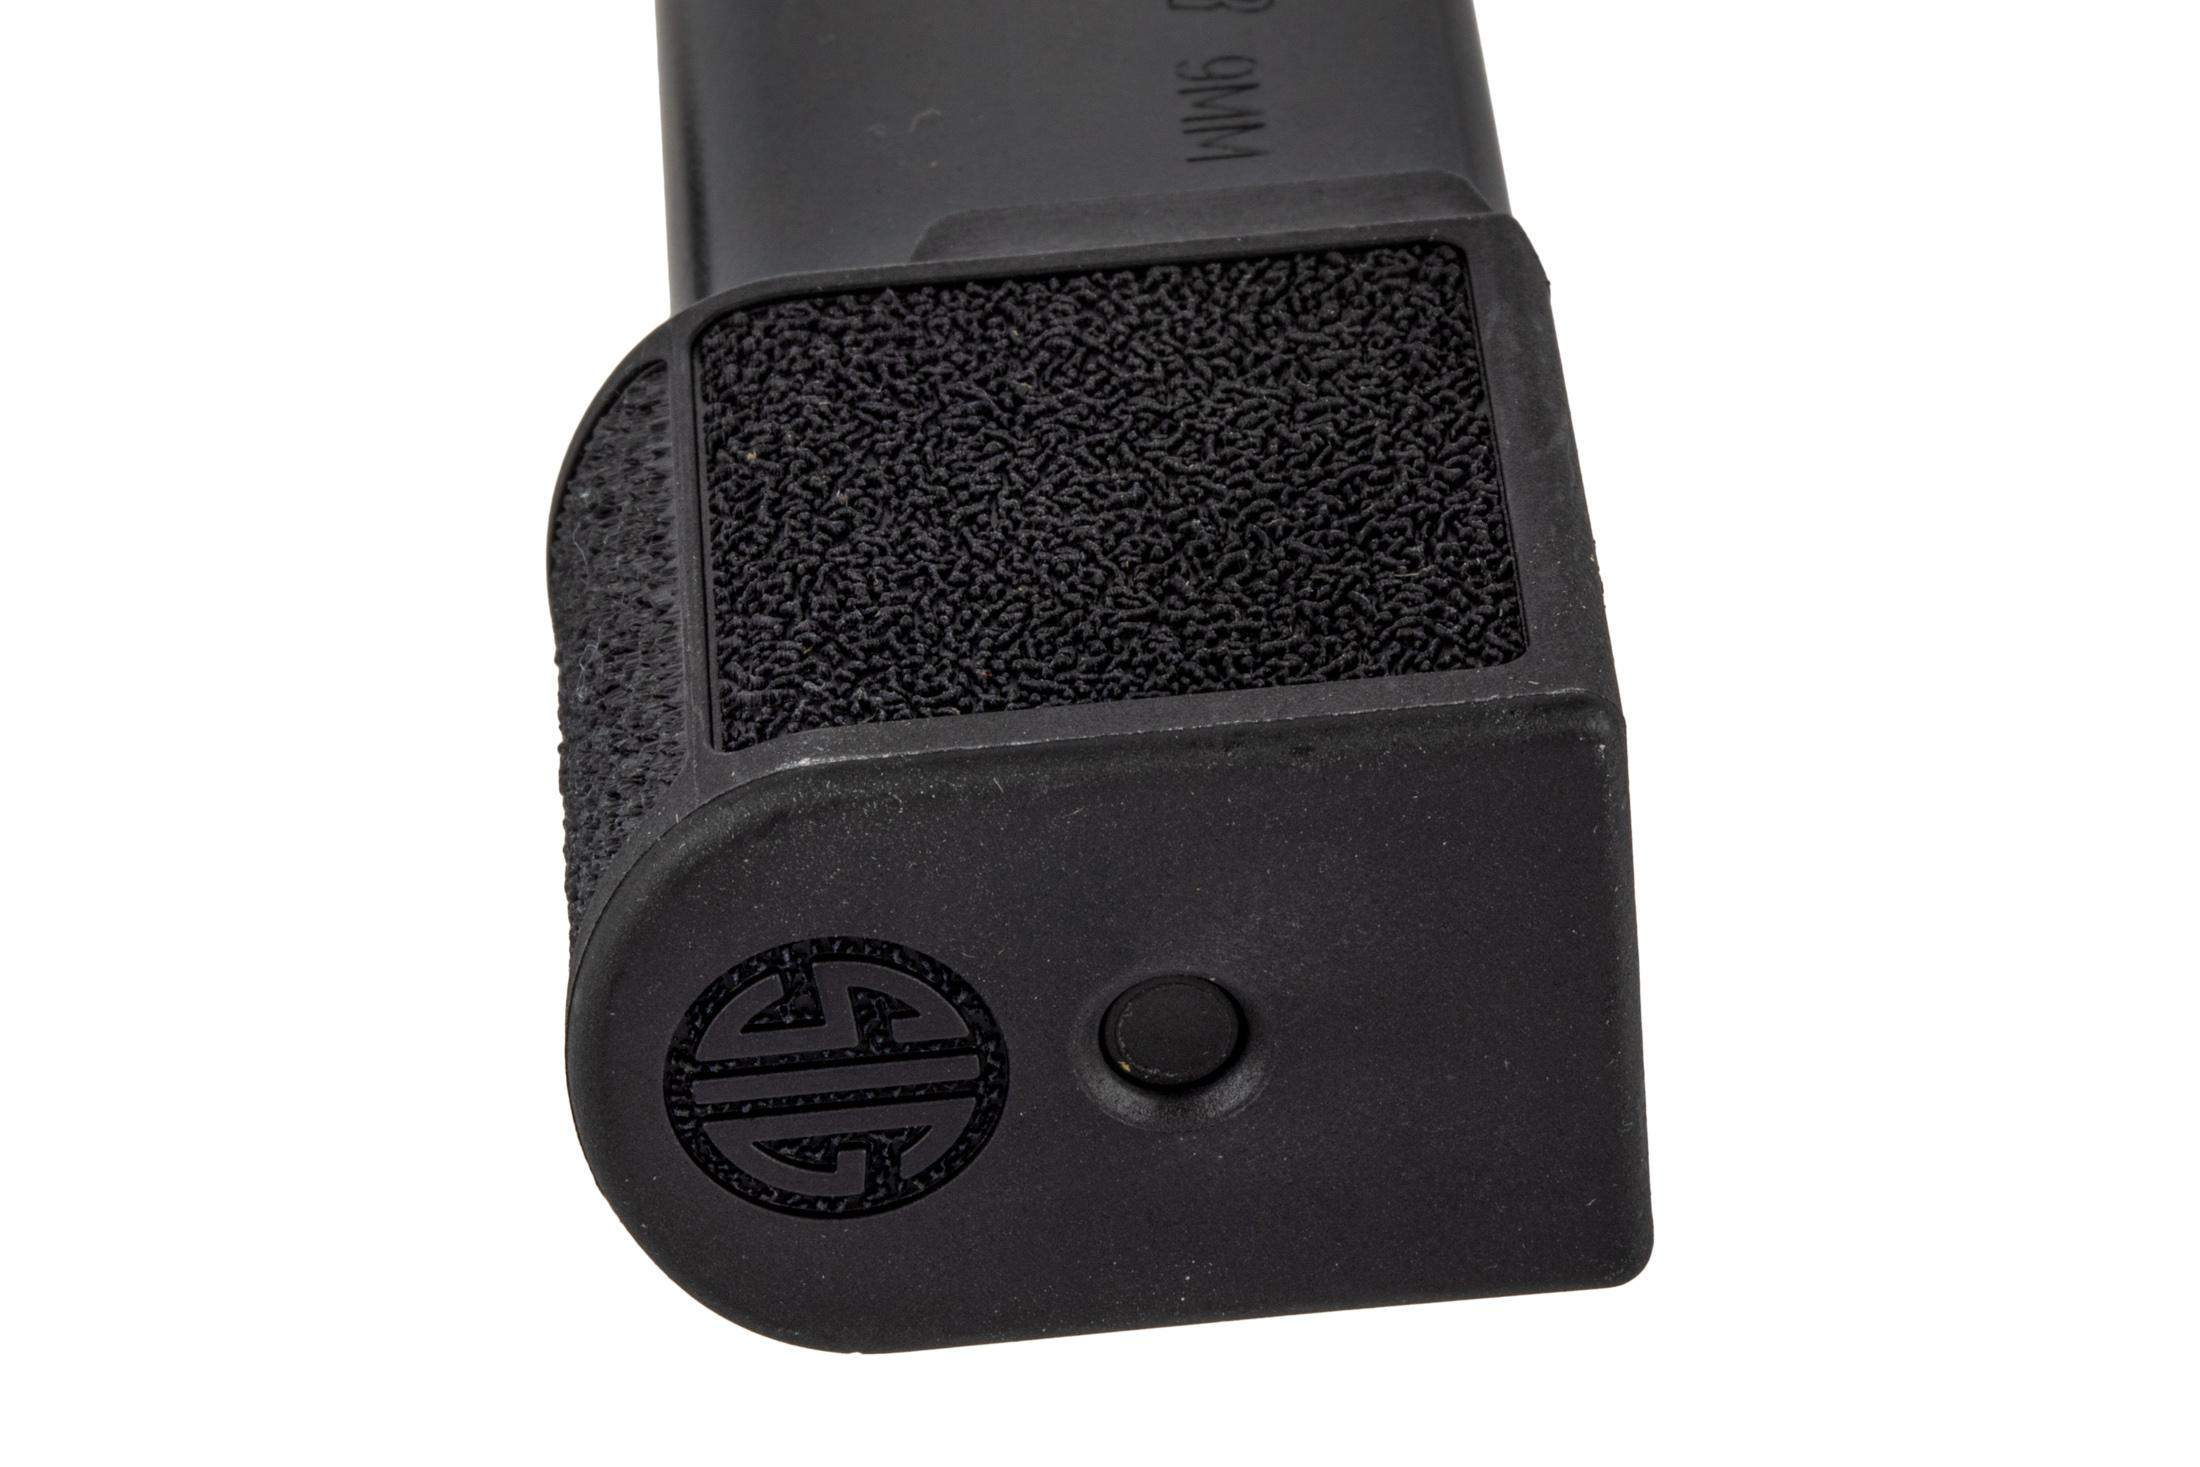 The Sig Sauer P365 factory magazine features a polymer grip extension